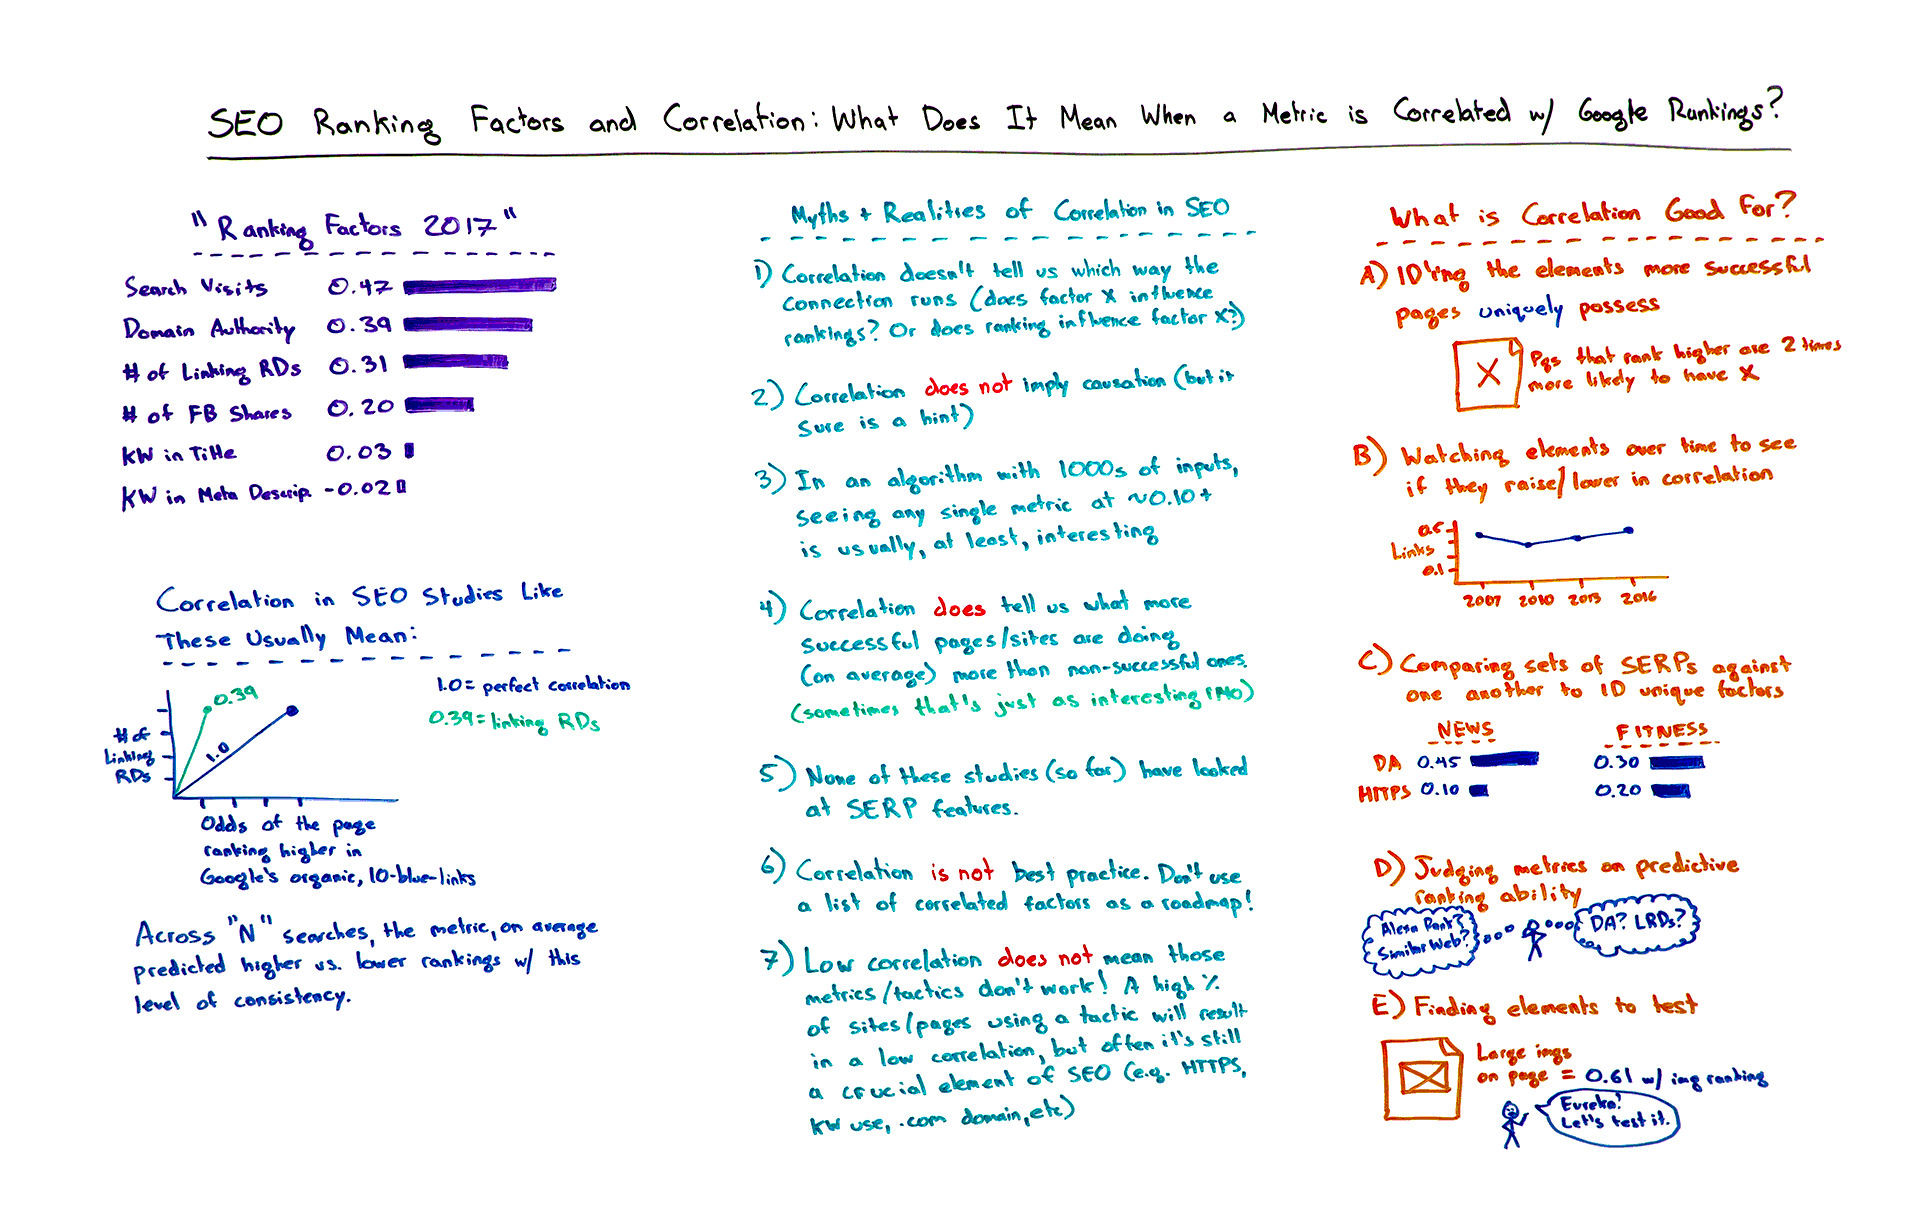 SEO Ranking Factors and Correlation